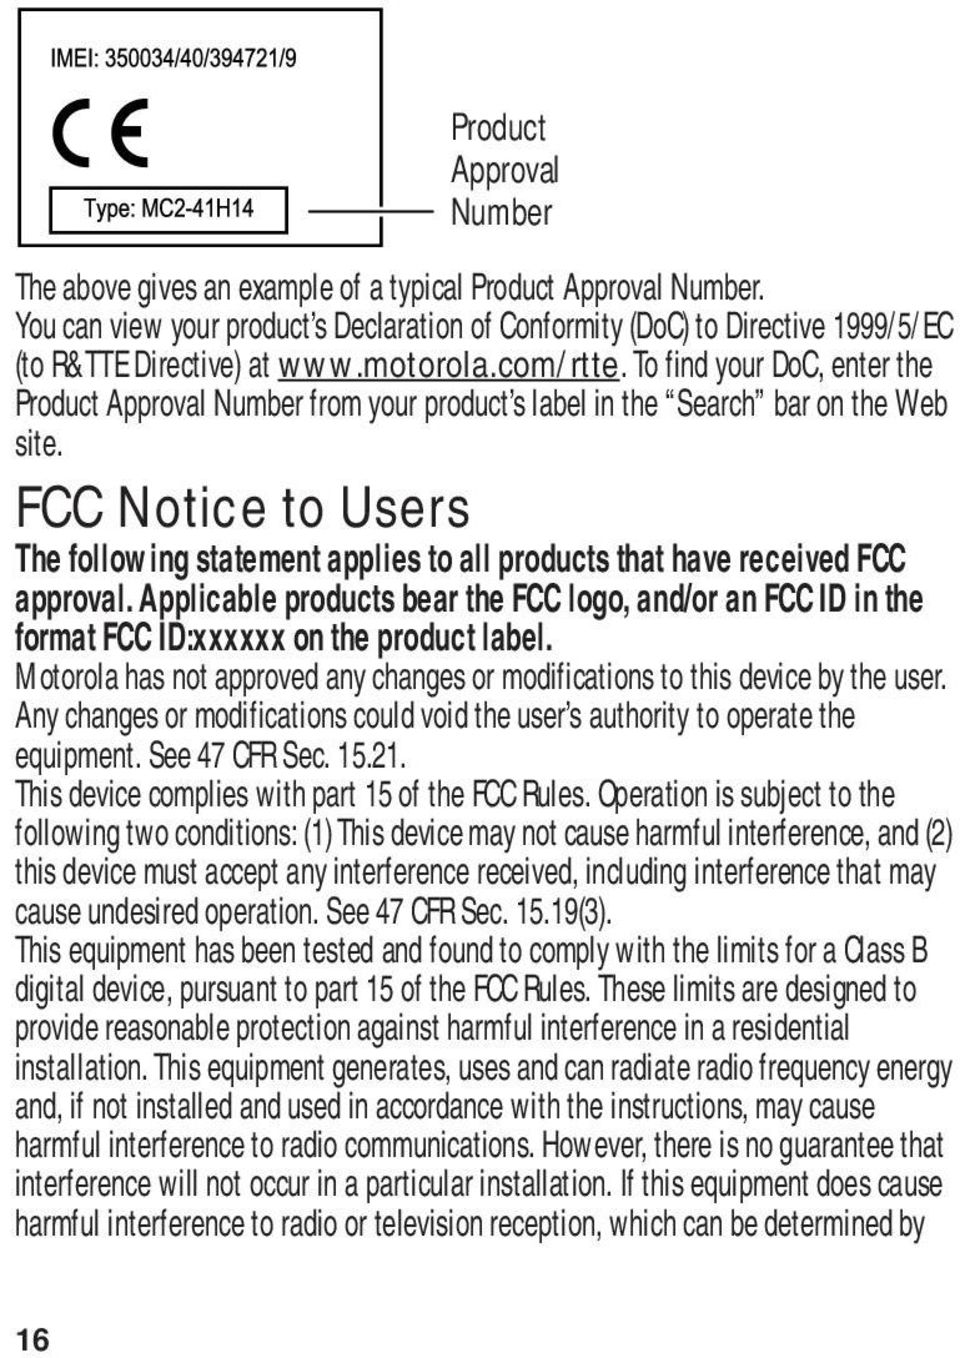 FCC Notice to Users Product Approval Number FCC Notice The following statement applies to all products that have received FCC approval.